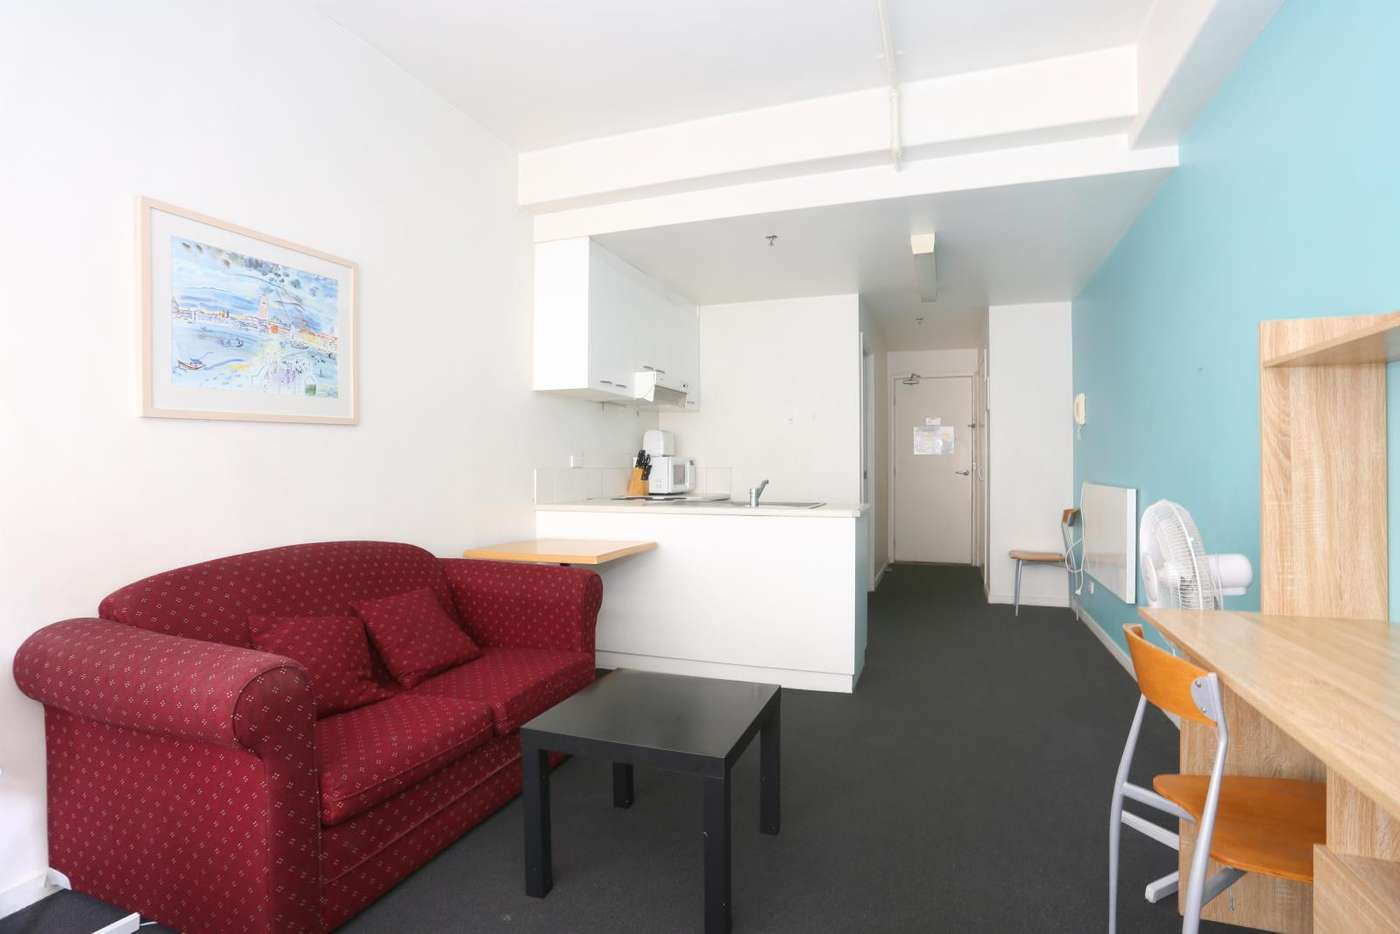 Main view of Homely studio listing, 213/408 Lonsdale Street, Melbourne VIC 3000